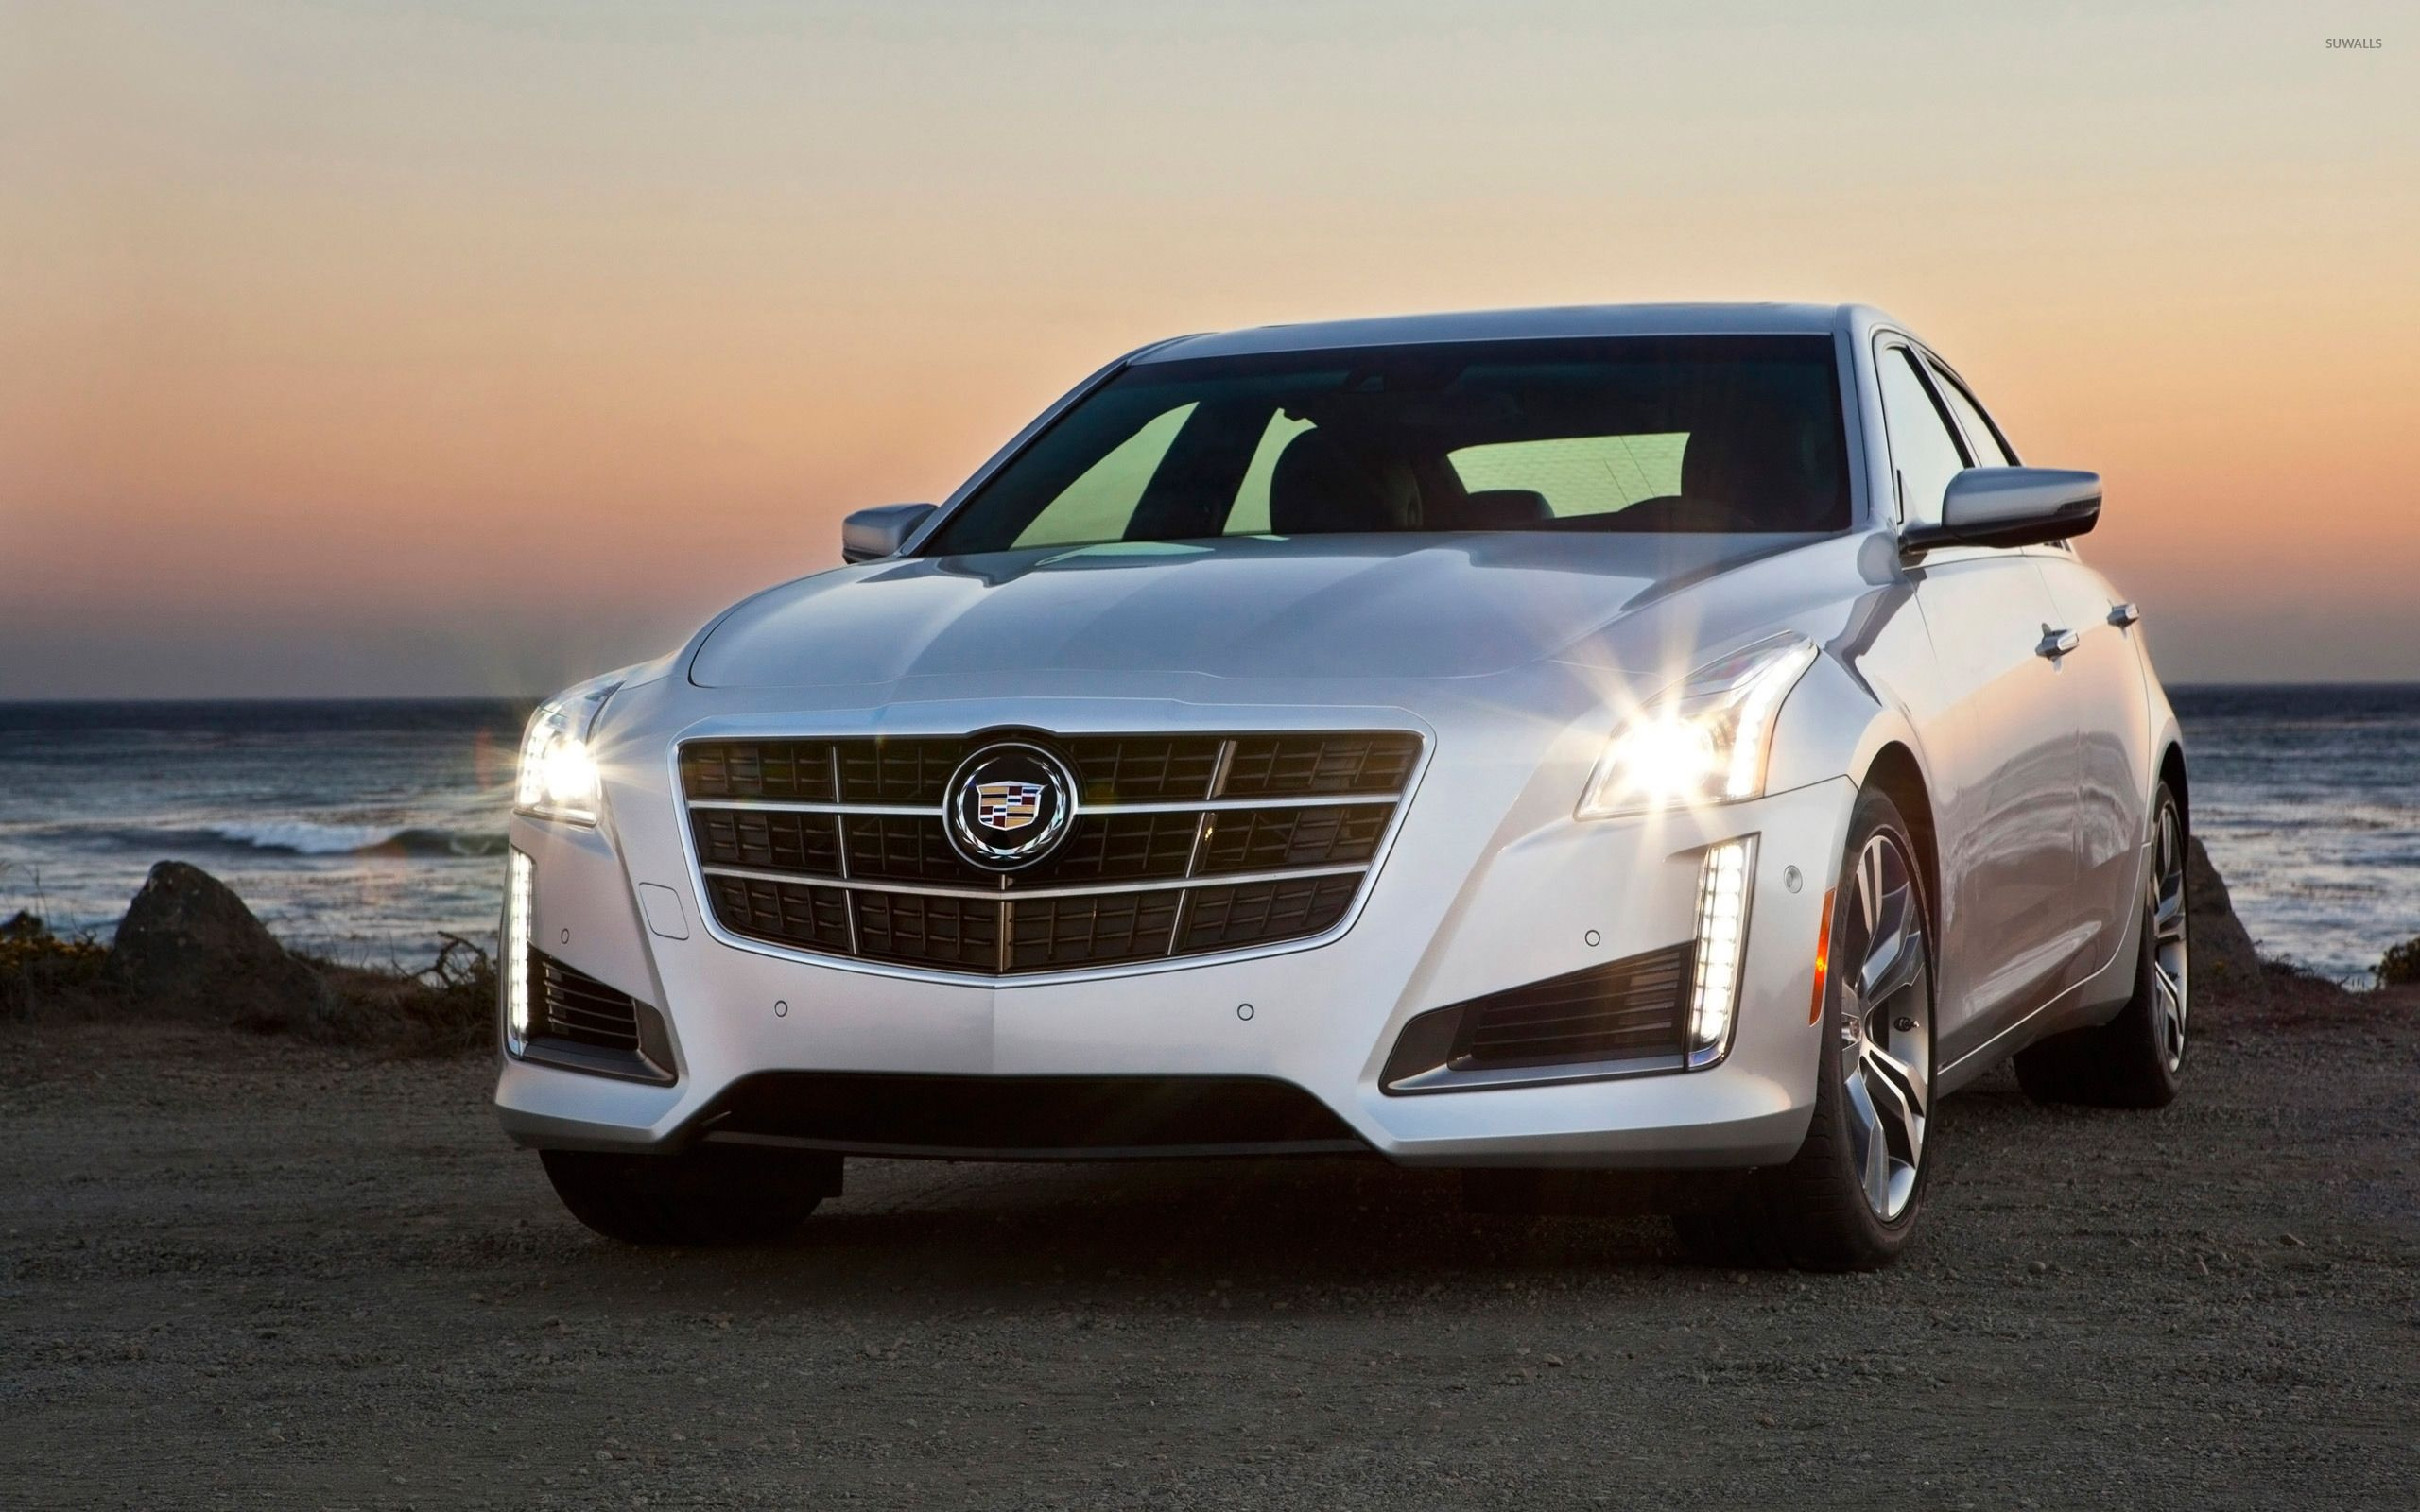 2014 Cadillac Cts Sport Wagon Wallpapers   2014 Cadillac Cts V Sport 4  Wallpaper Car Wallpapers